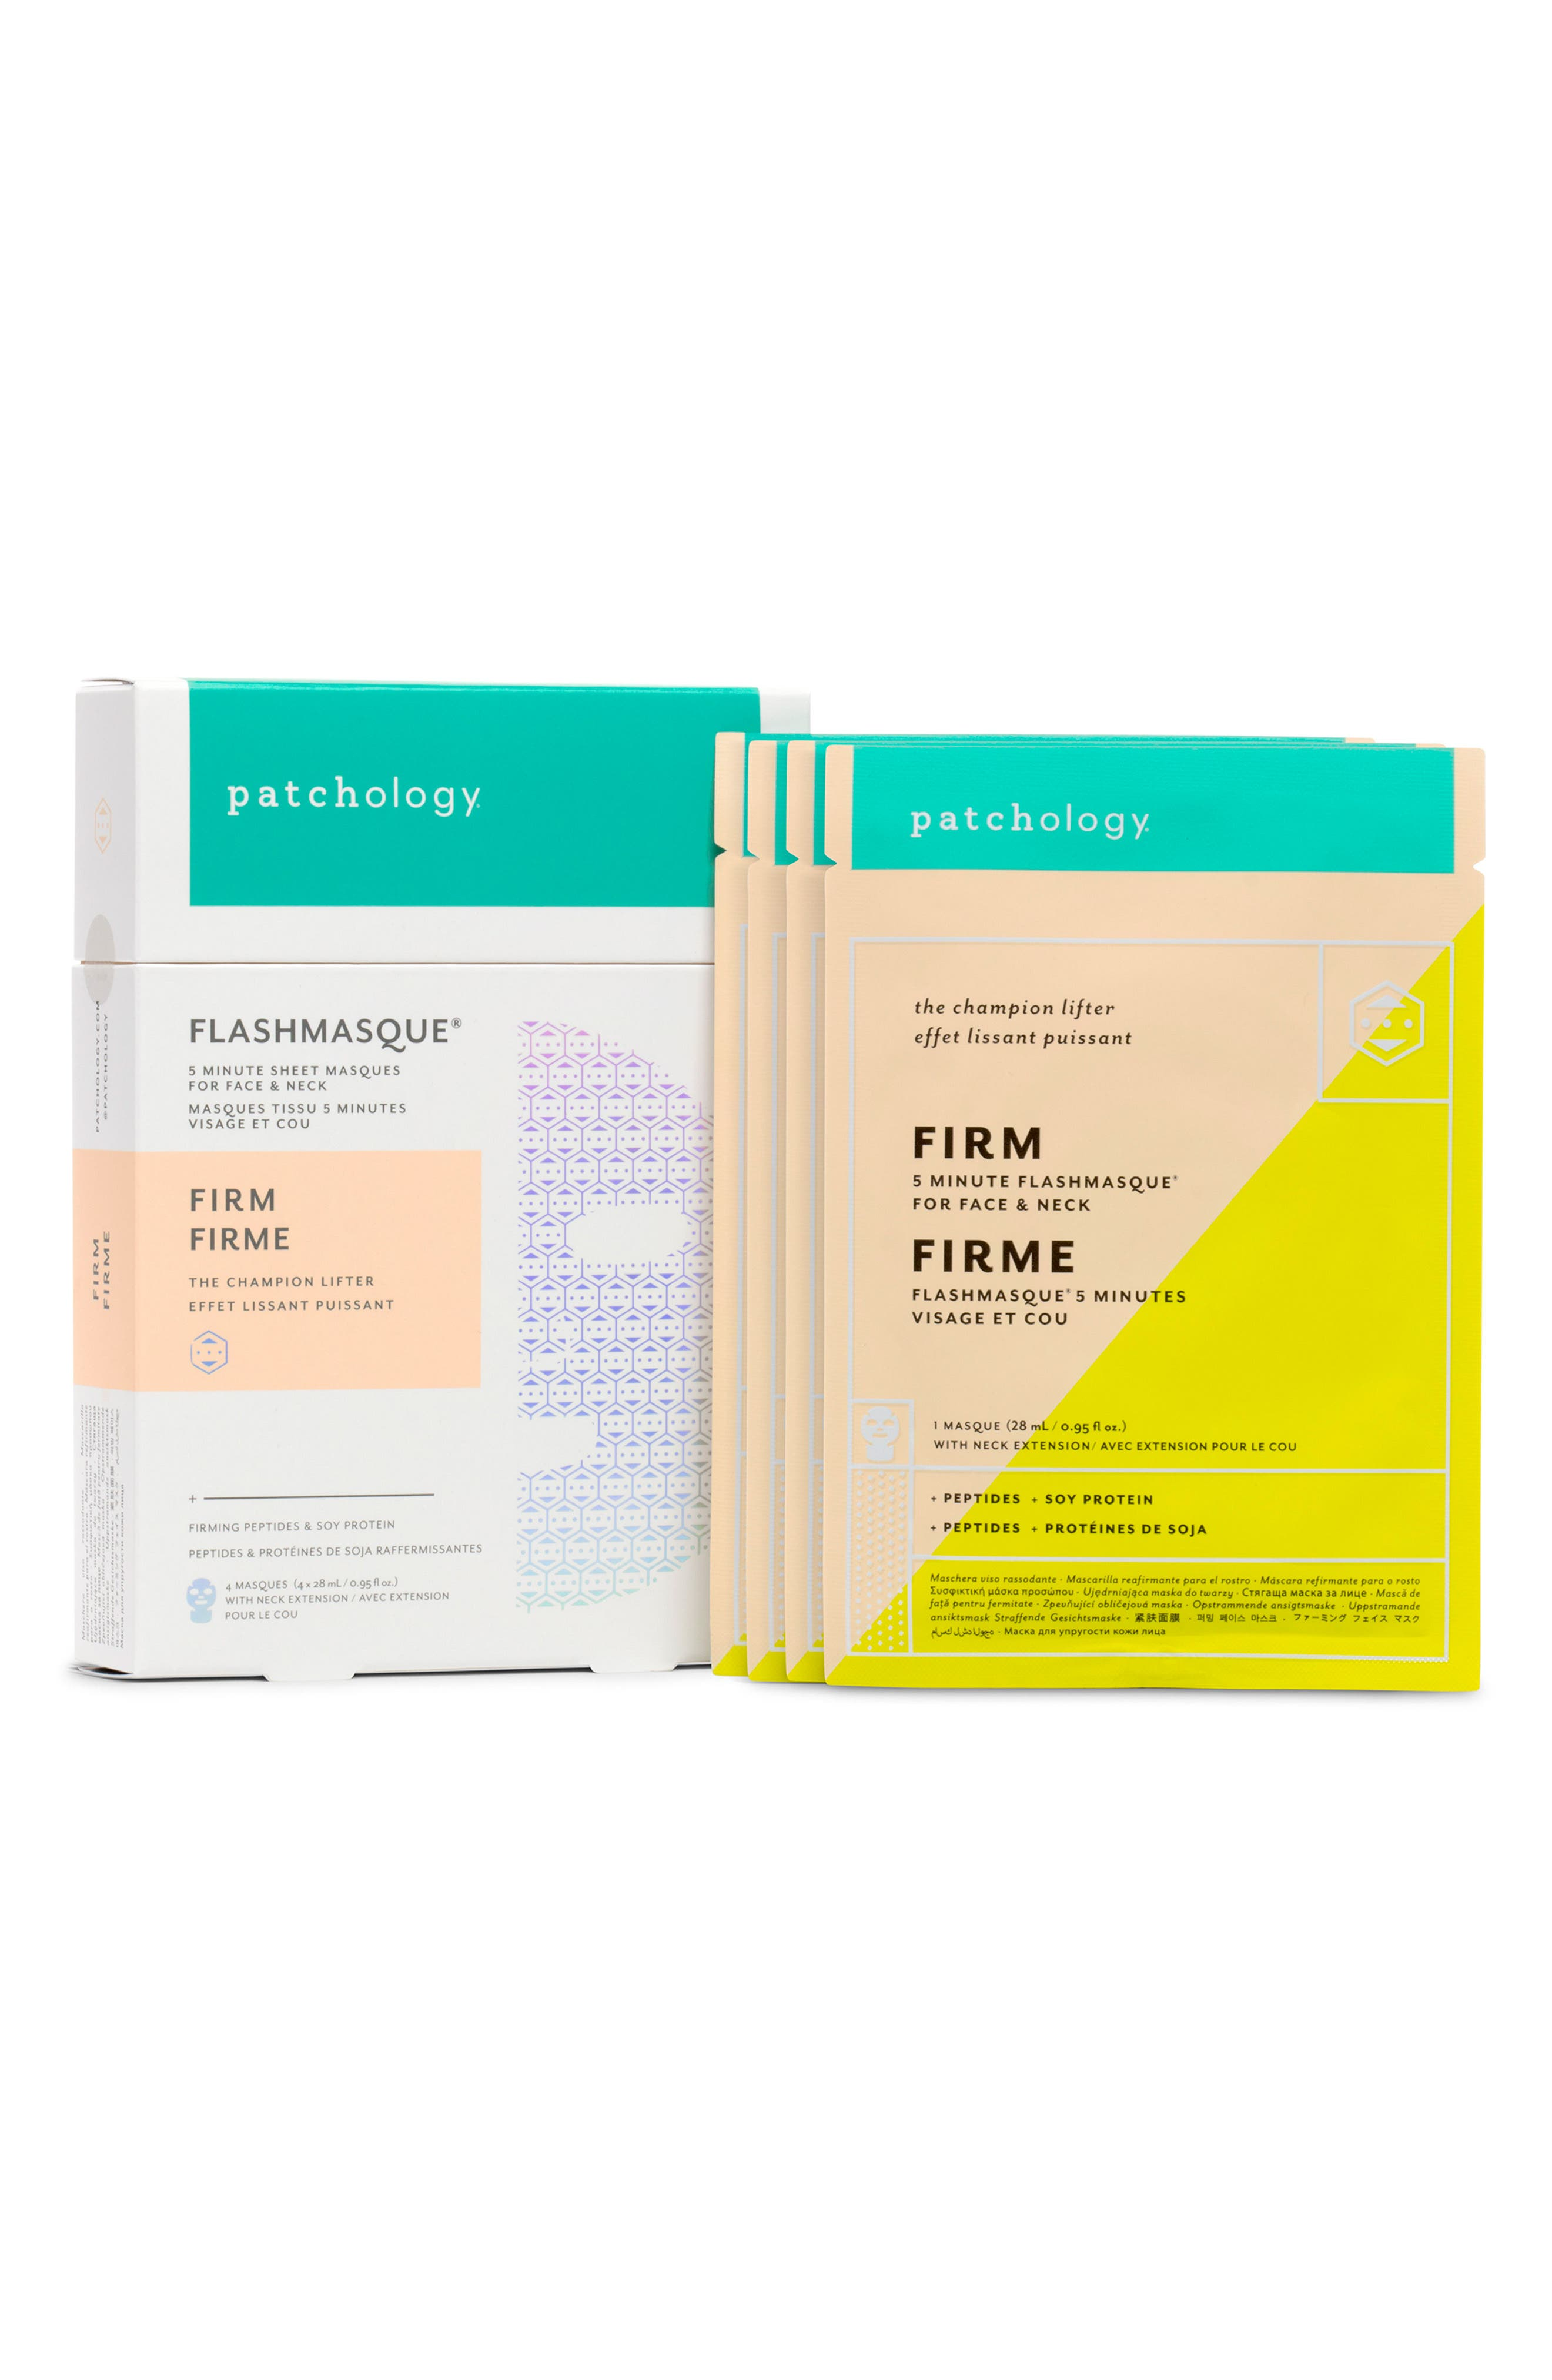 patchology Firm FlashMasque™ for Face & Neck